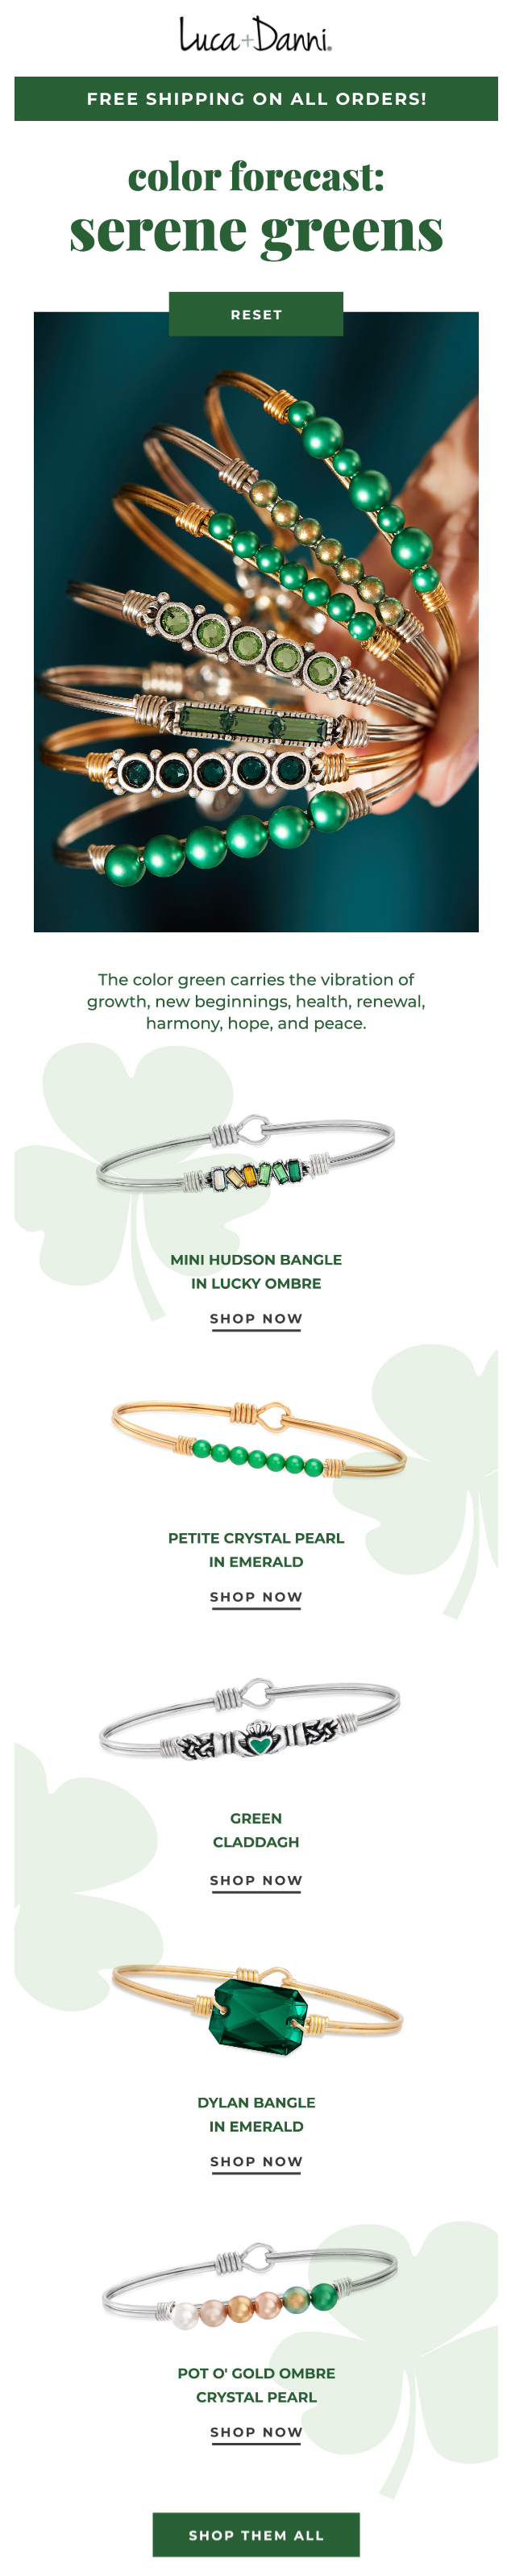 St. Patrick's Day email example by Luca+Danni